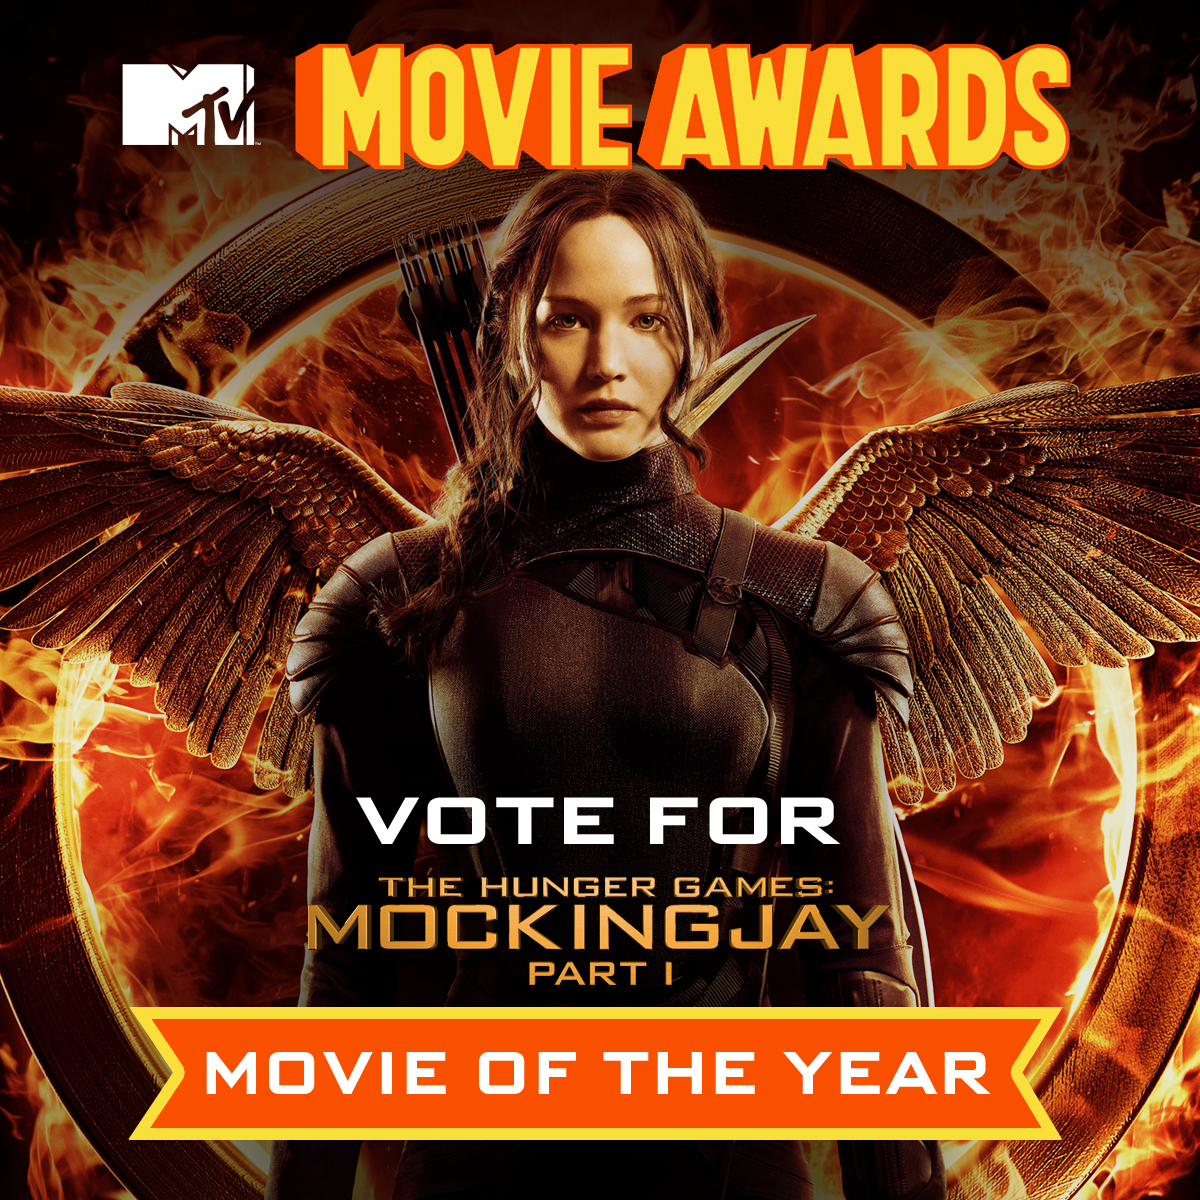 Show your support for The Hunger Games Mockingjay